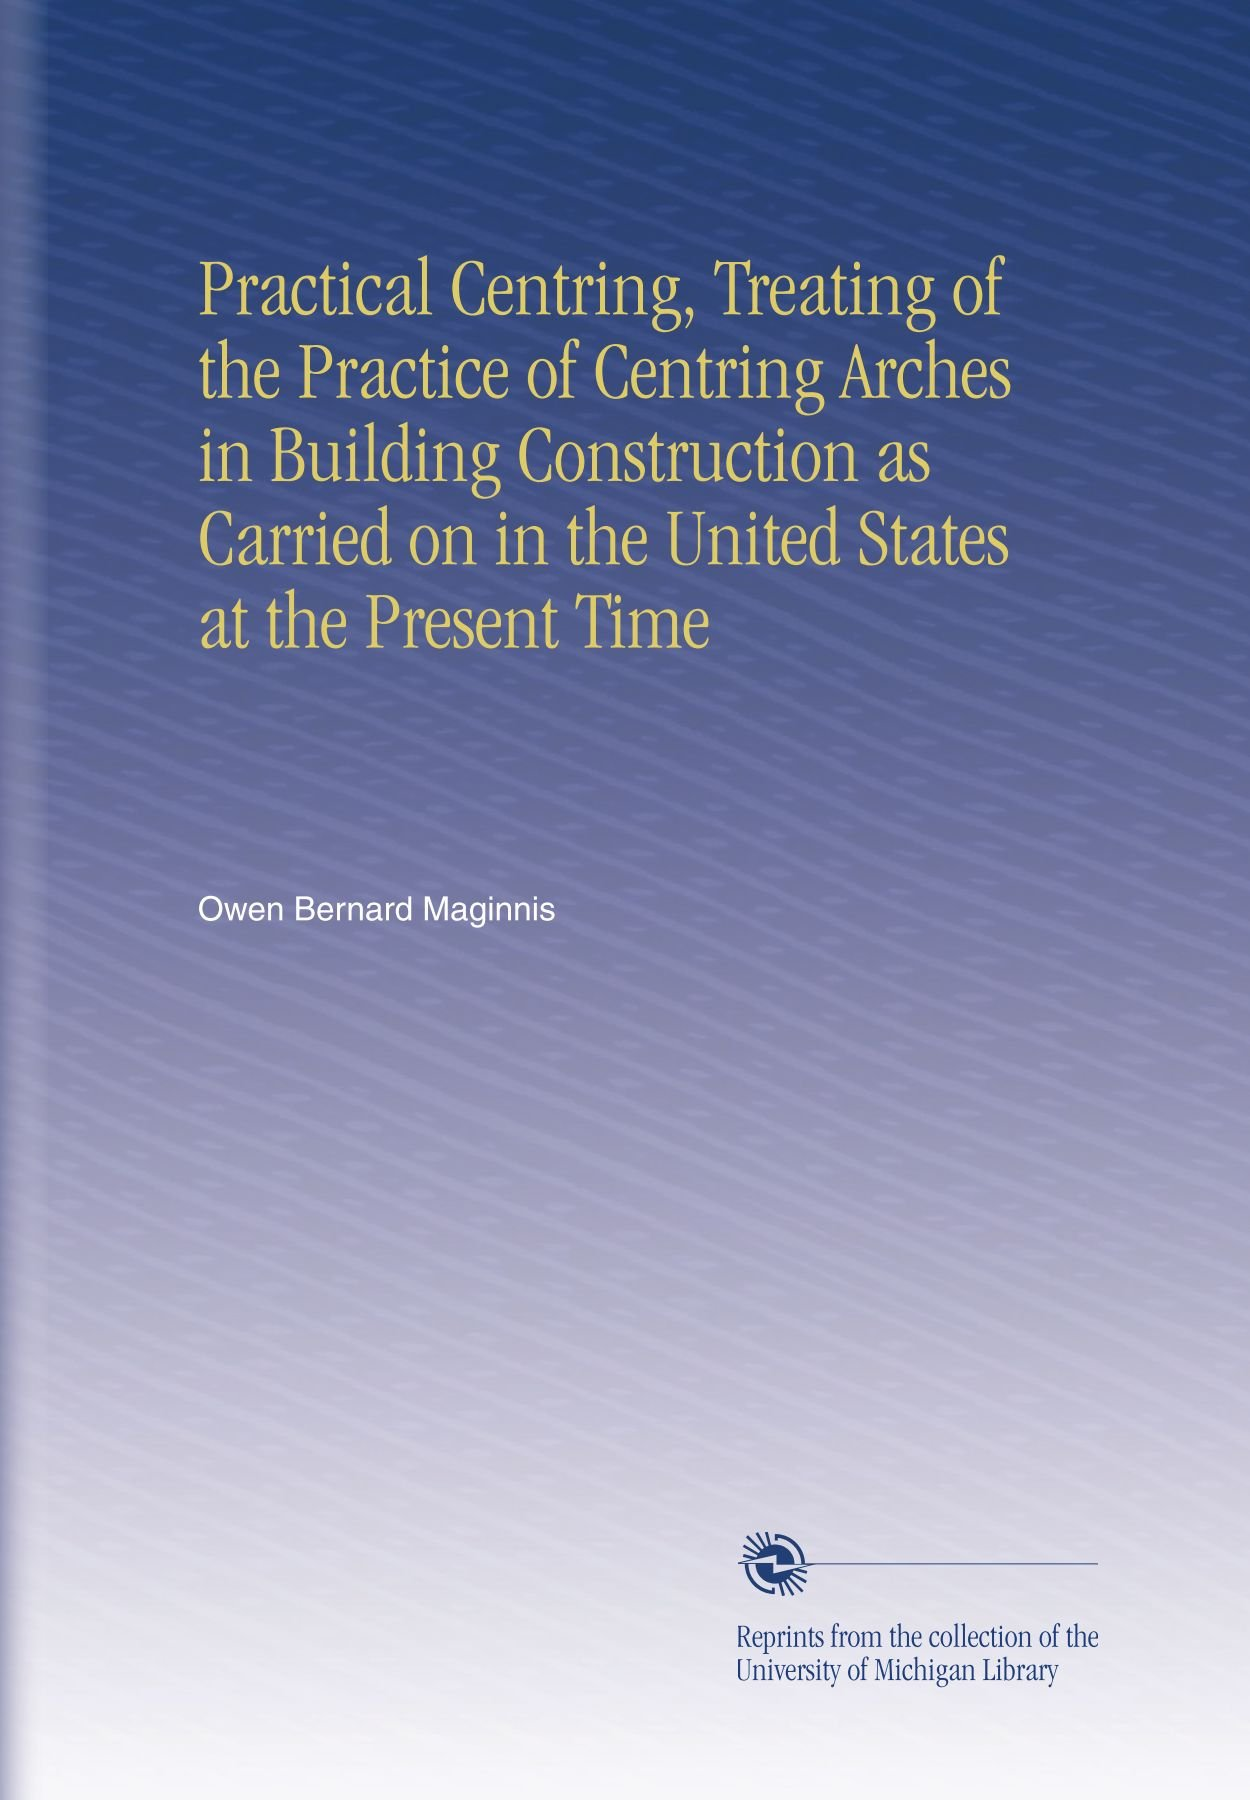 Read Online Practical Centring, Treating of the Practice of Centring Arches in Building Construction as Carried on in the United States at the Present Time PDF